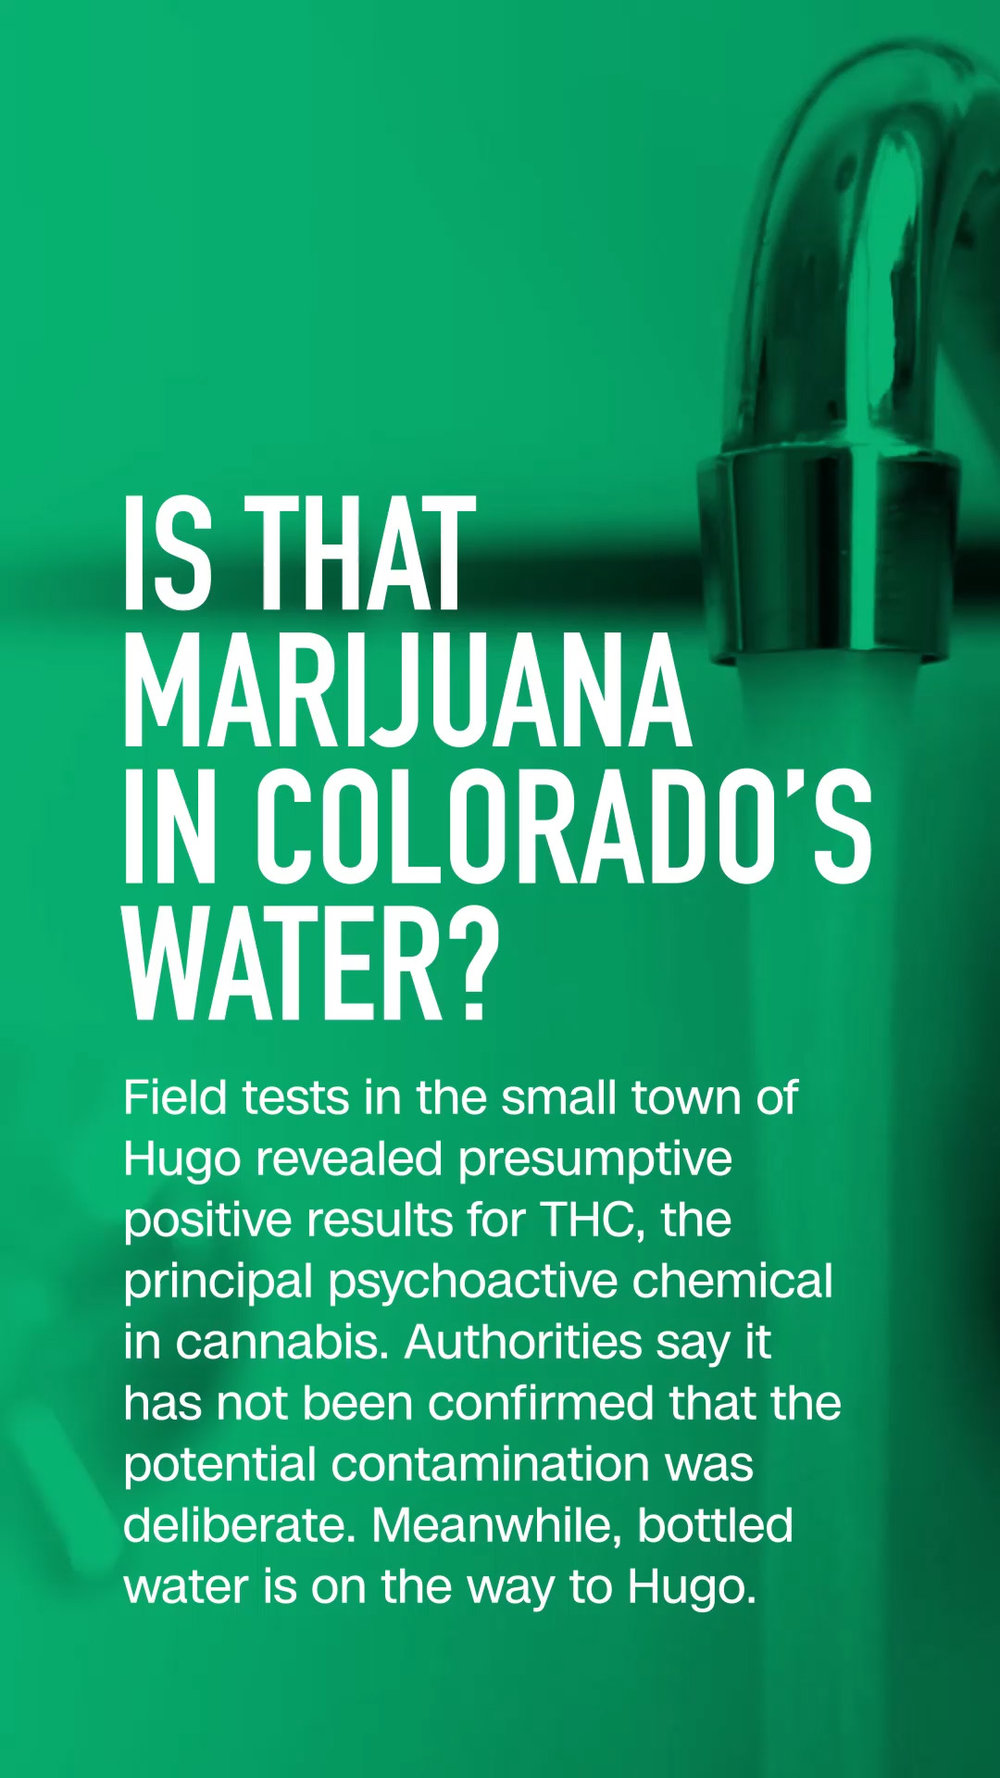 T1-4 - colorado weed water.jpg